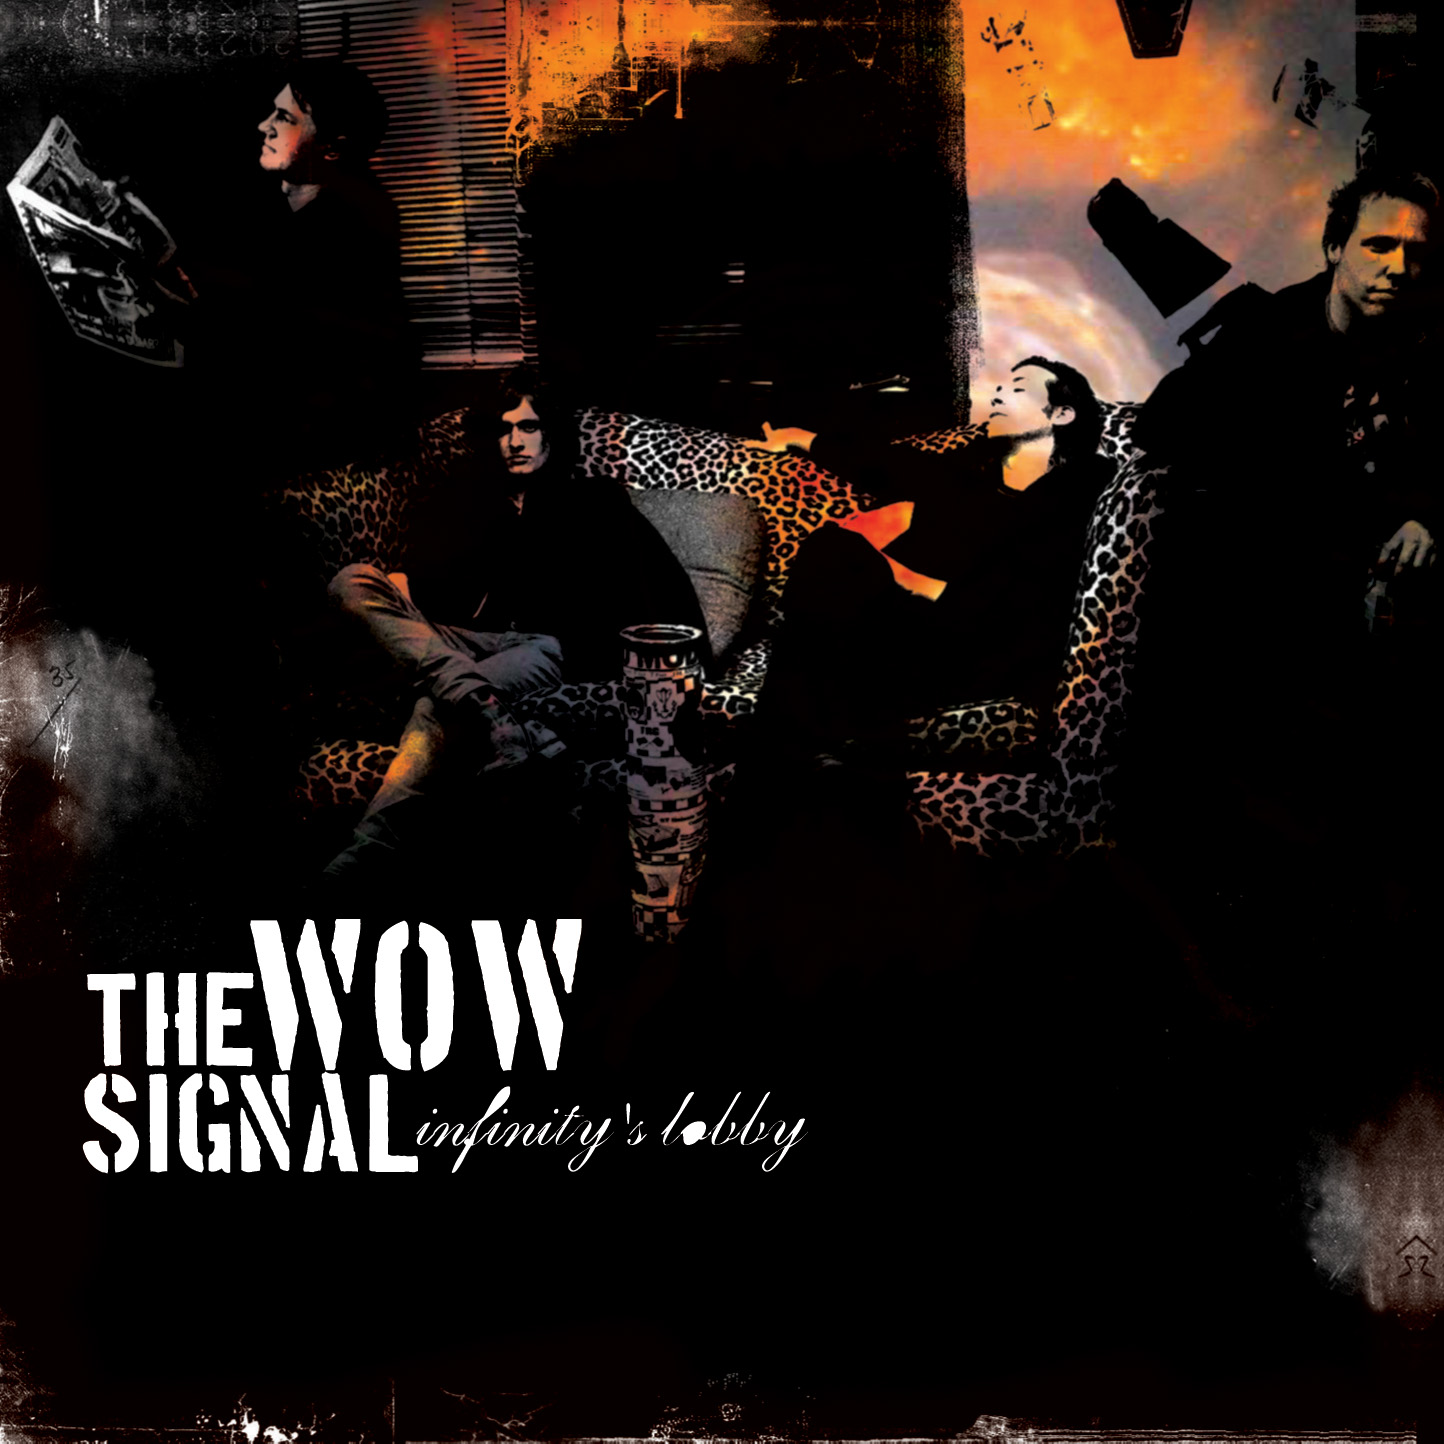 http://indiemusicpeople.com/uploads2/The_Wow_Signal_-_wow-cover-tunecore.jpg